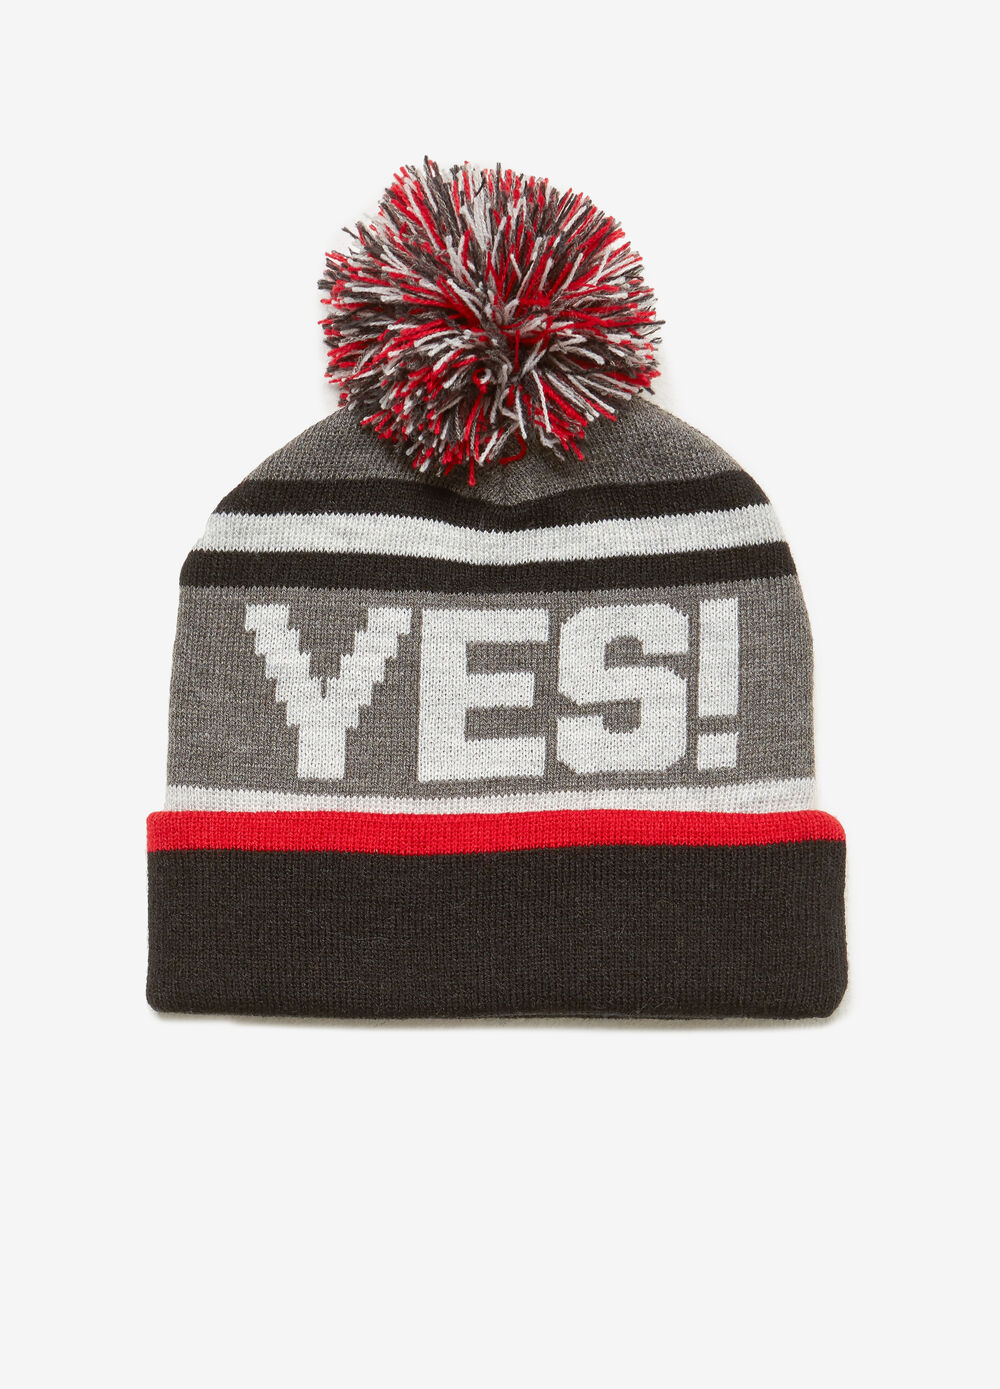 Knitted beanie cap with printed lettering